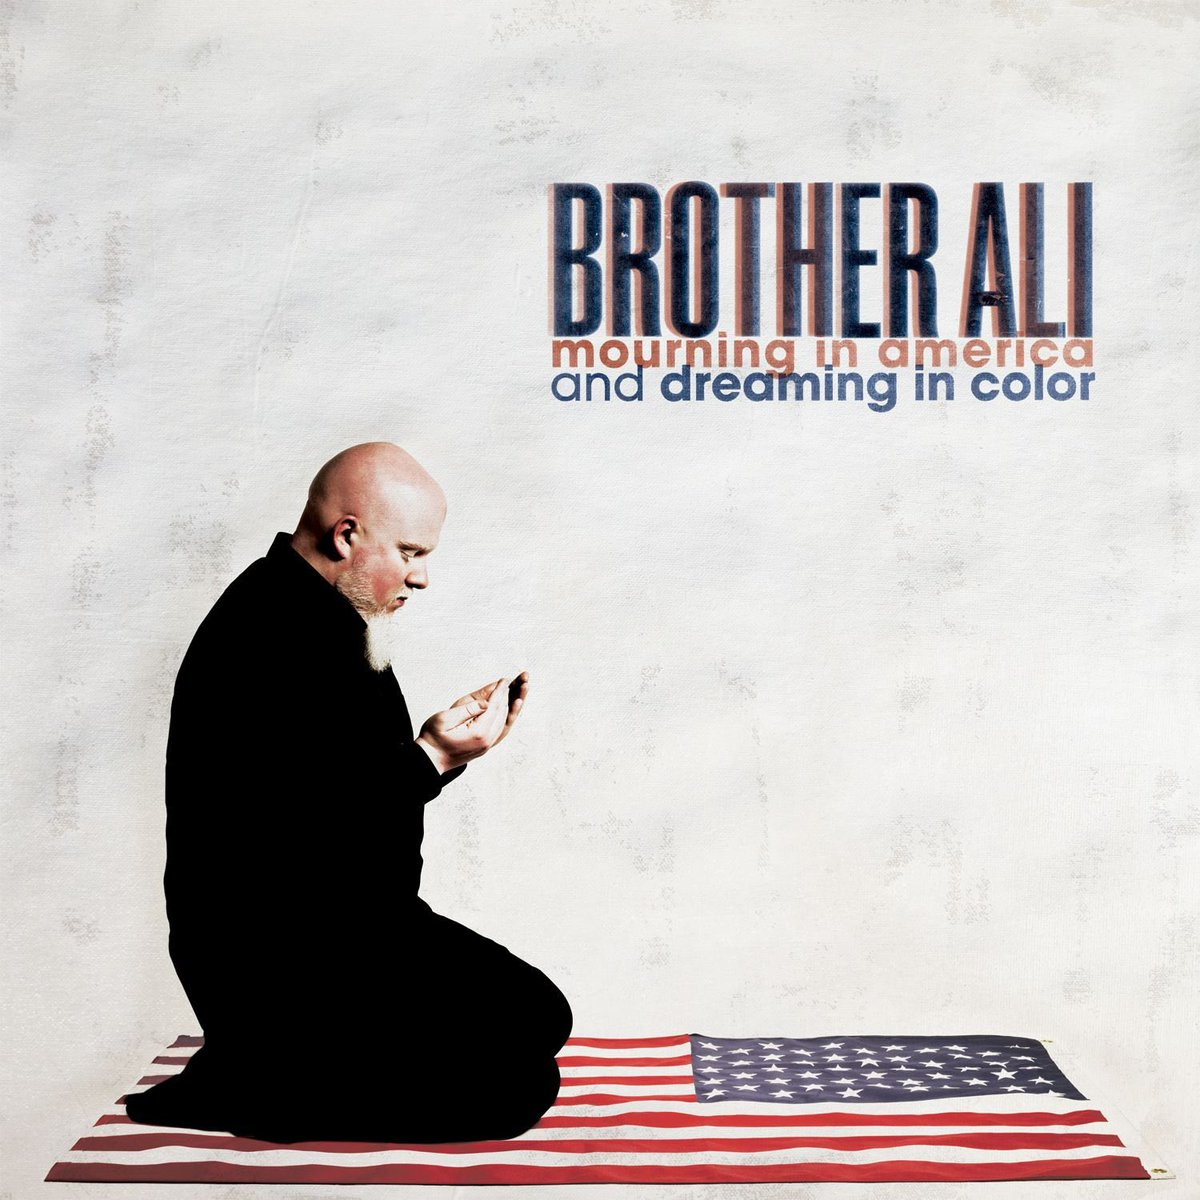 September 18, 2012 @BrotherAli released Mourning in America and Dreaming in Color Produced by @JakeUno Features Include @amirsulaiman @CornelWest @abywolf @plainolebill and more